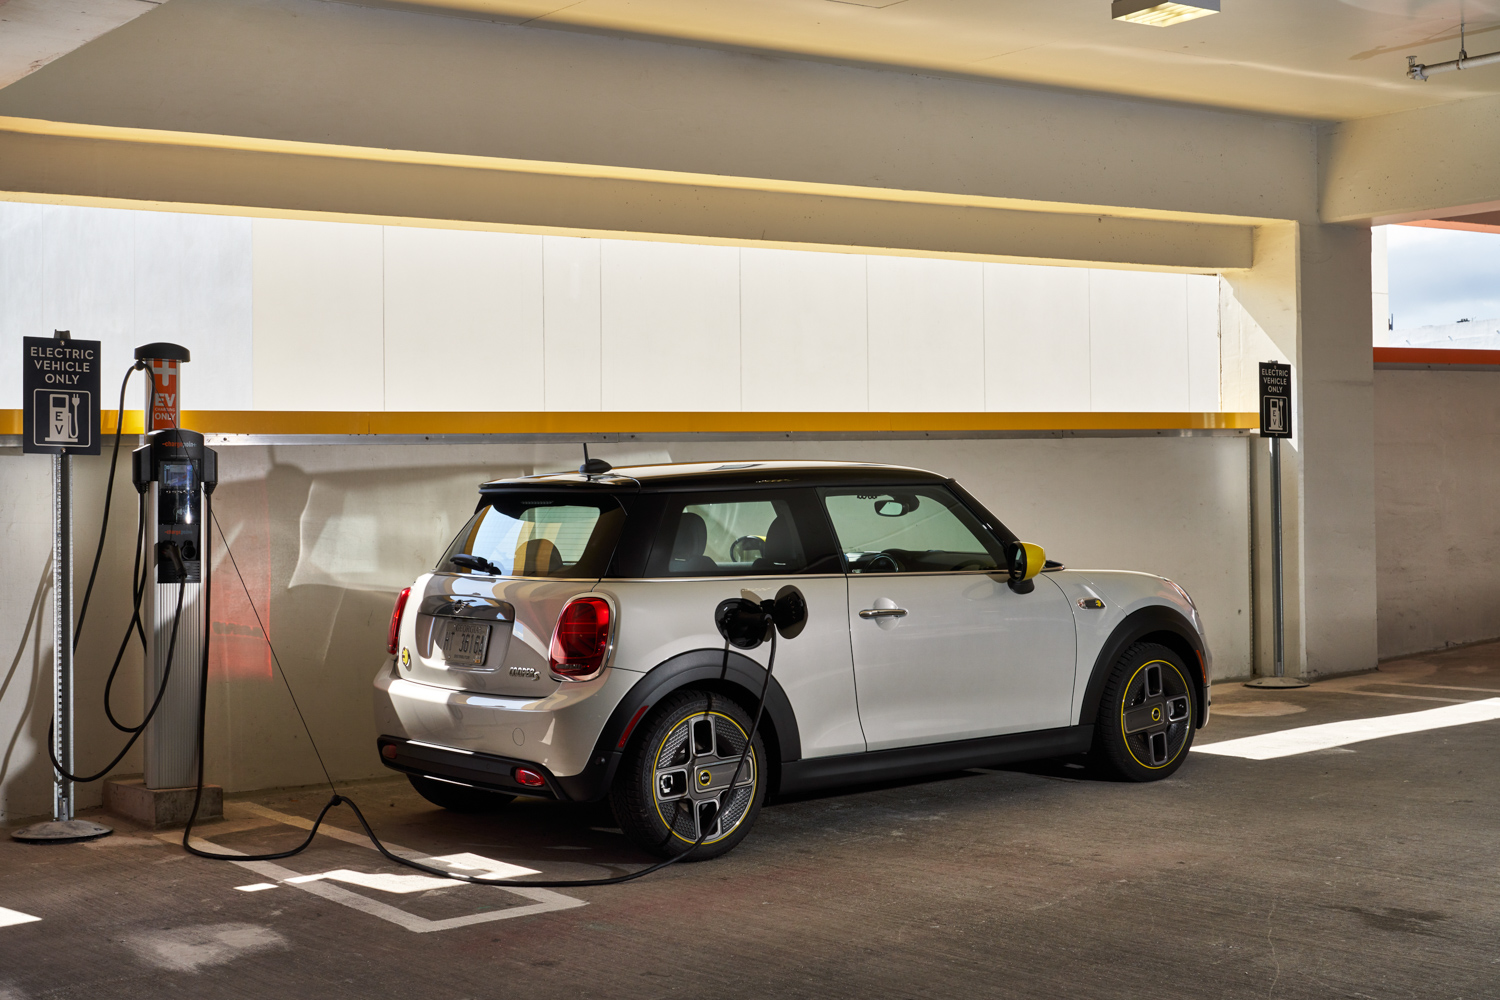 MINI Electric goes on sale in Ireland